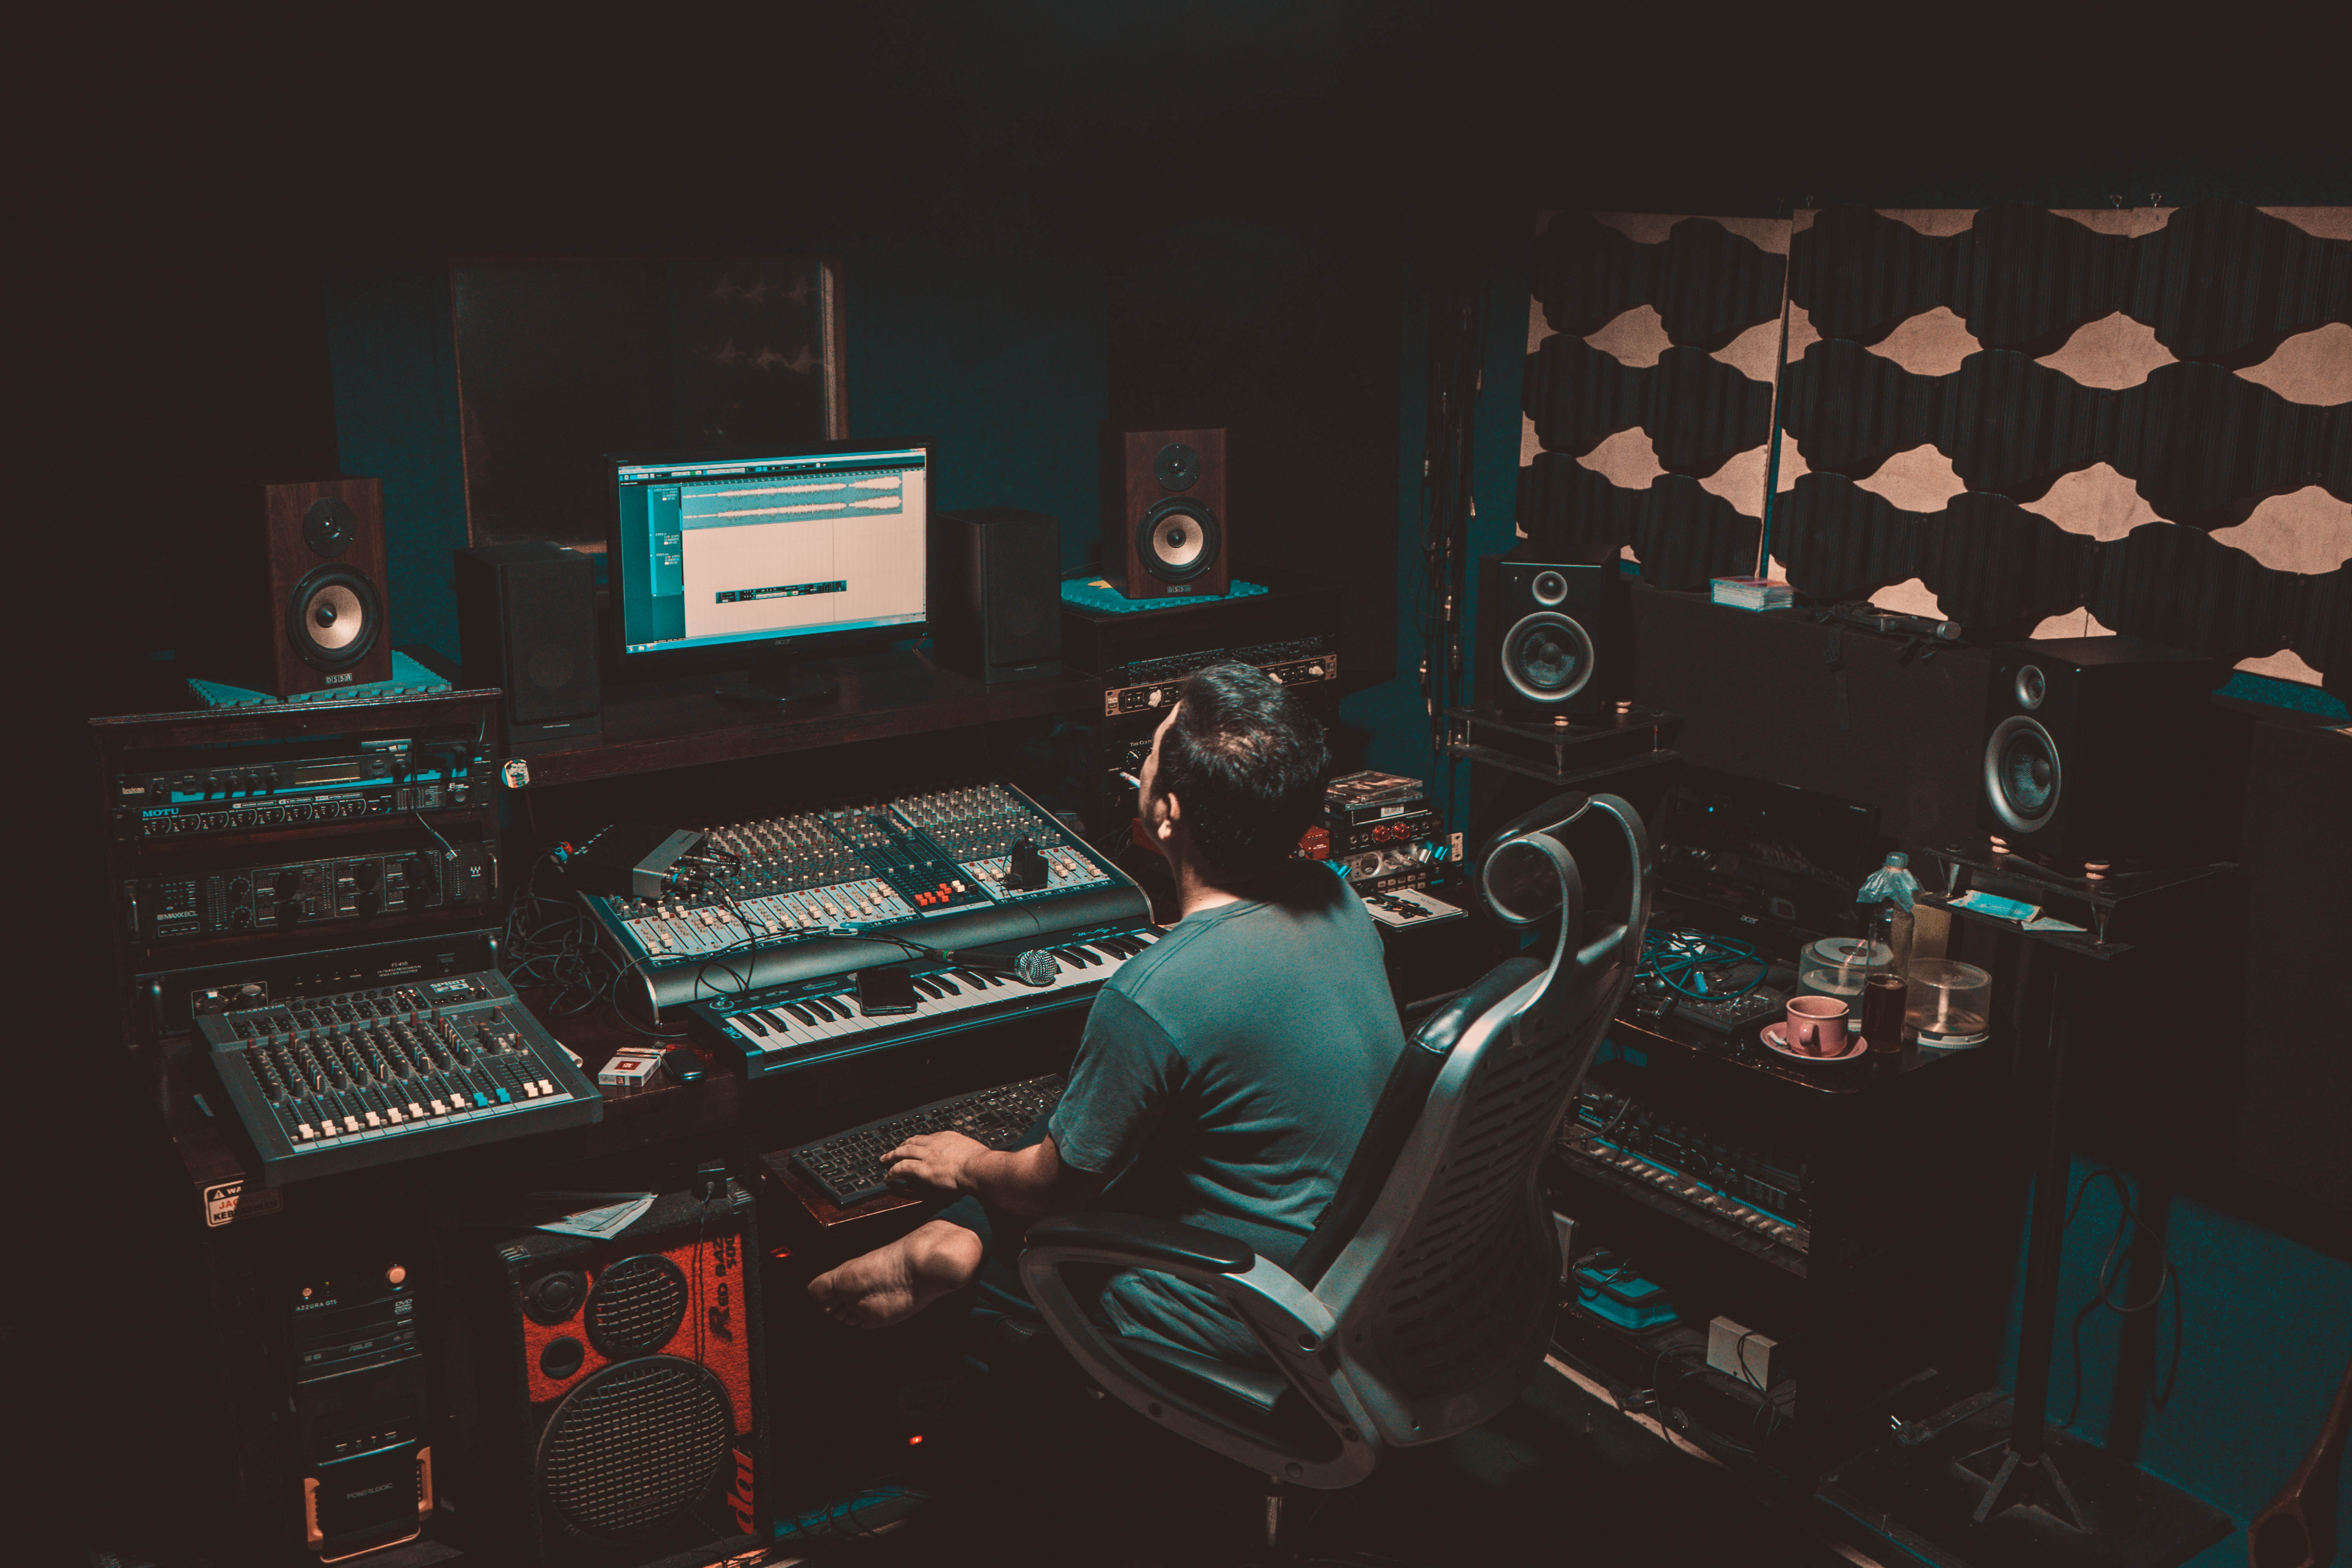 A music producer working on a sound board in a recording studio.